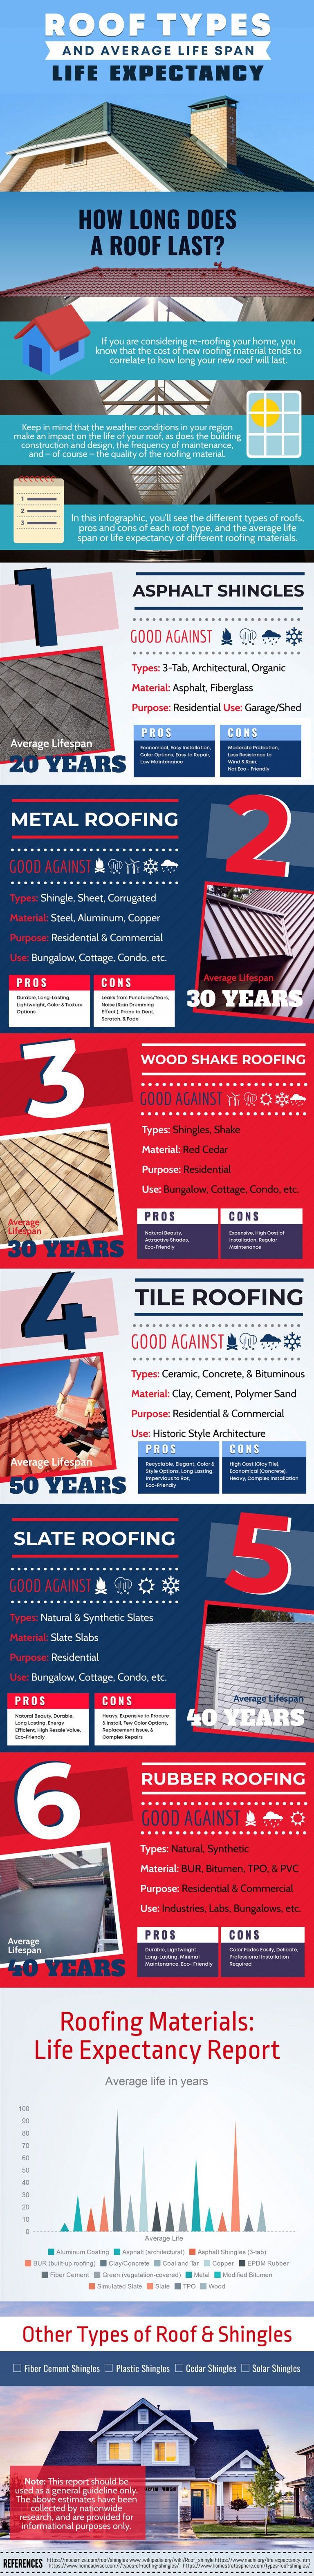 Roof Types and Their Lifespan